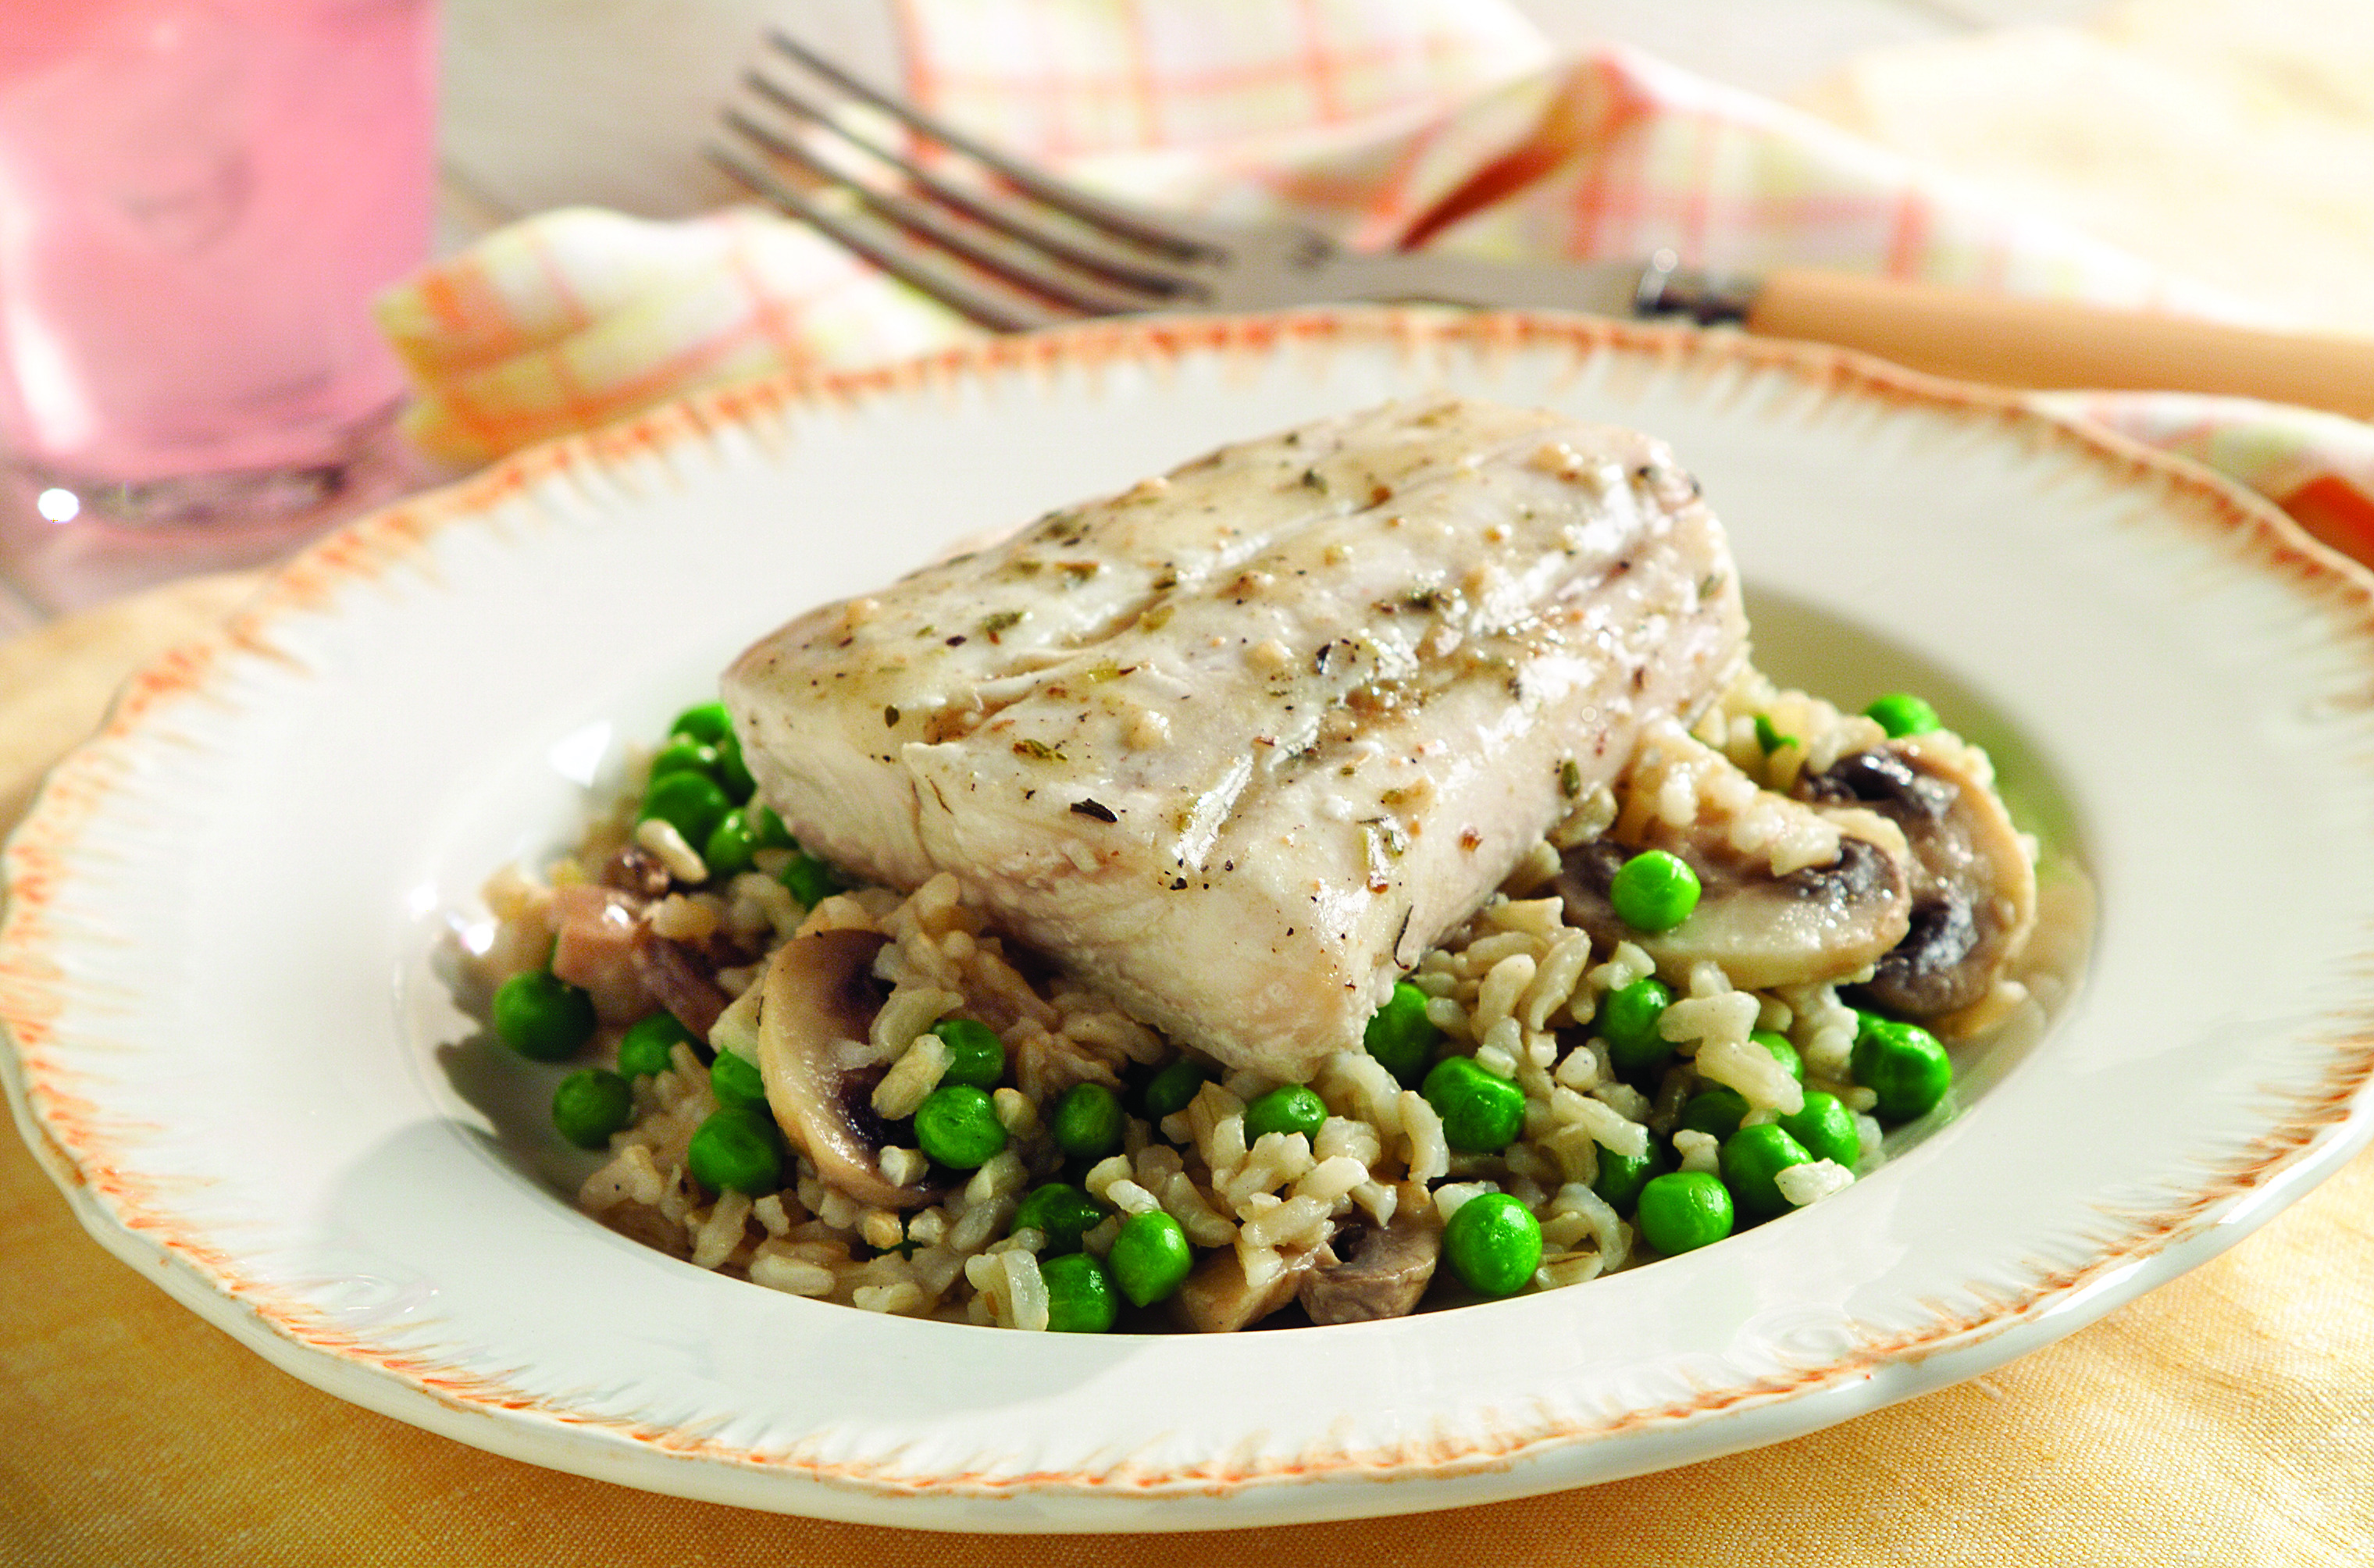 Mediterranean Halibut with Mushroom Rice Pilaf